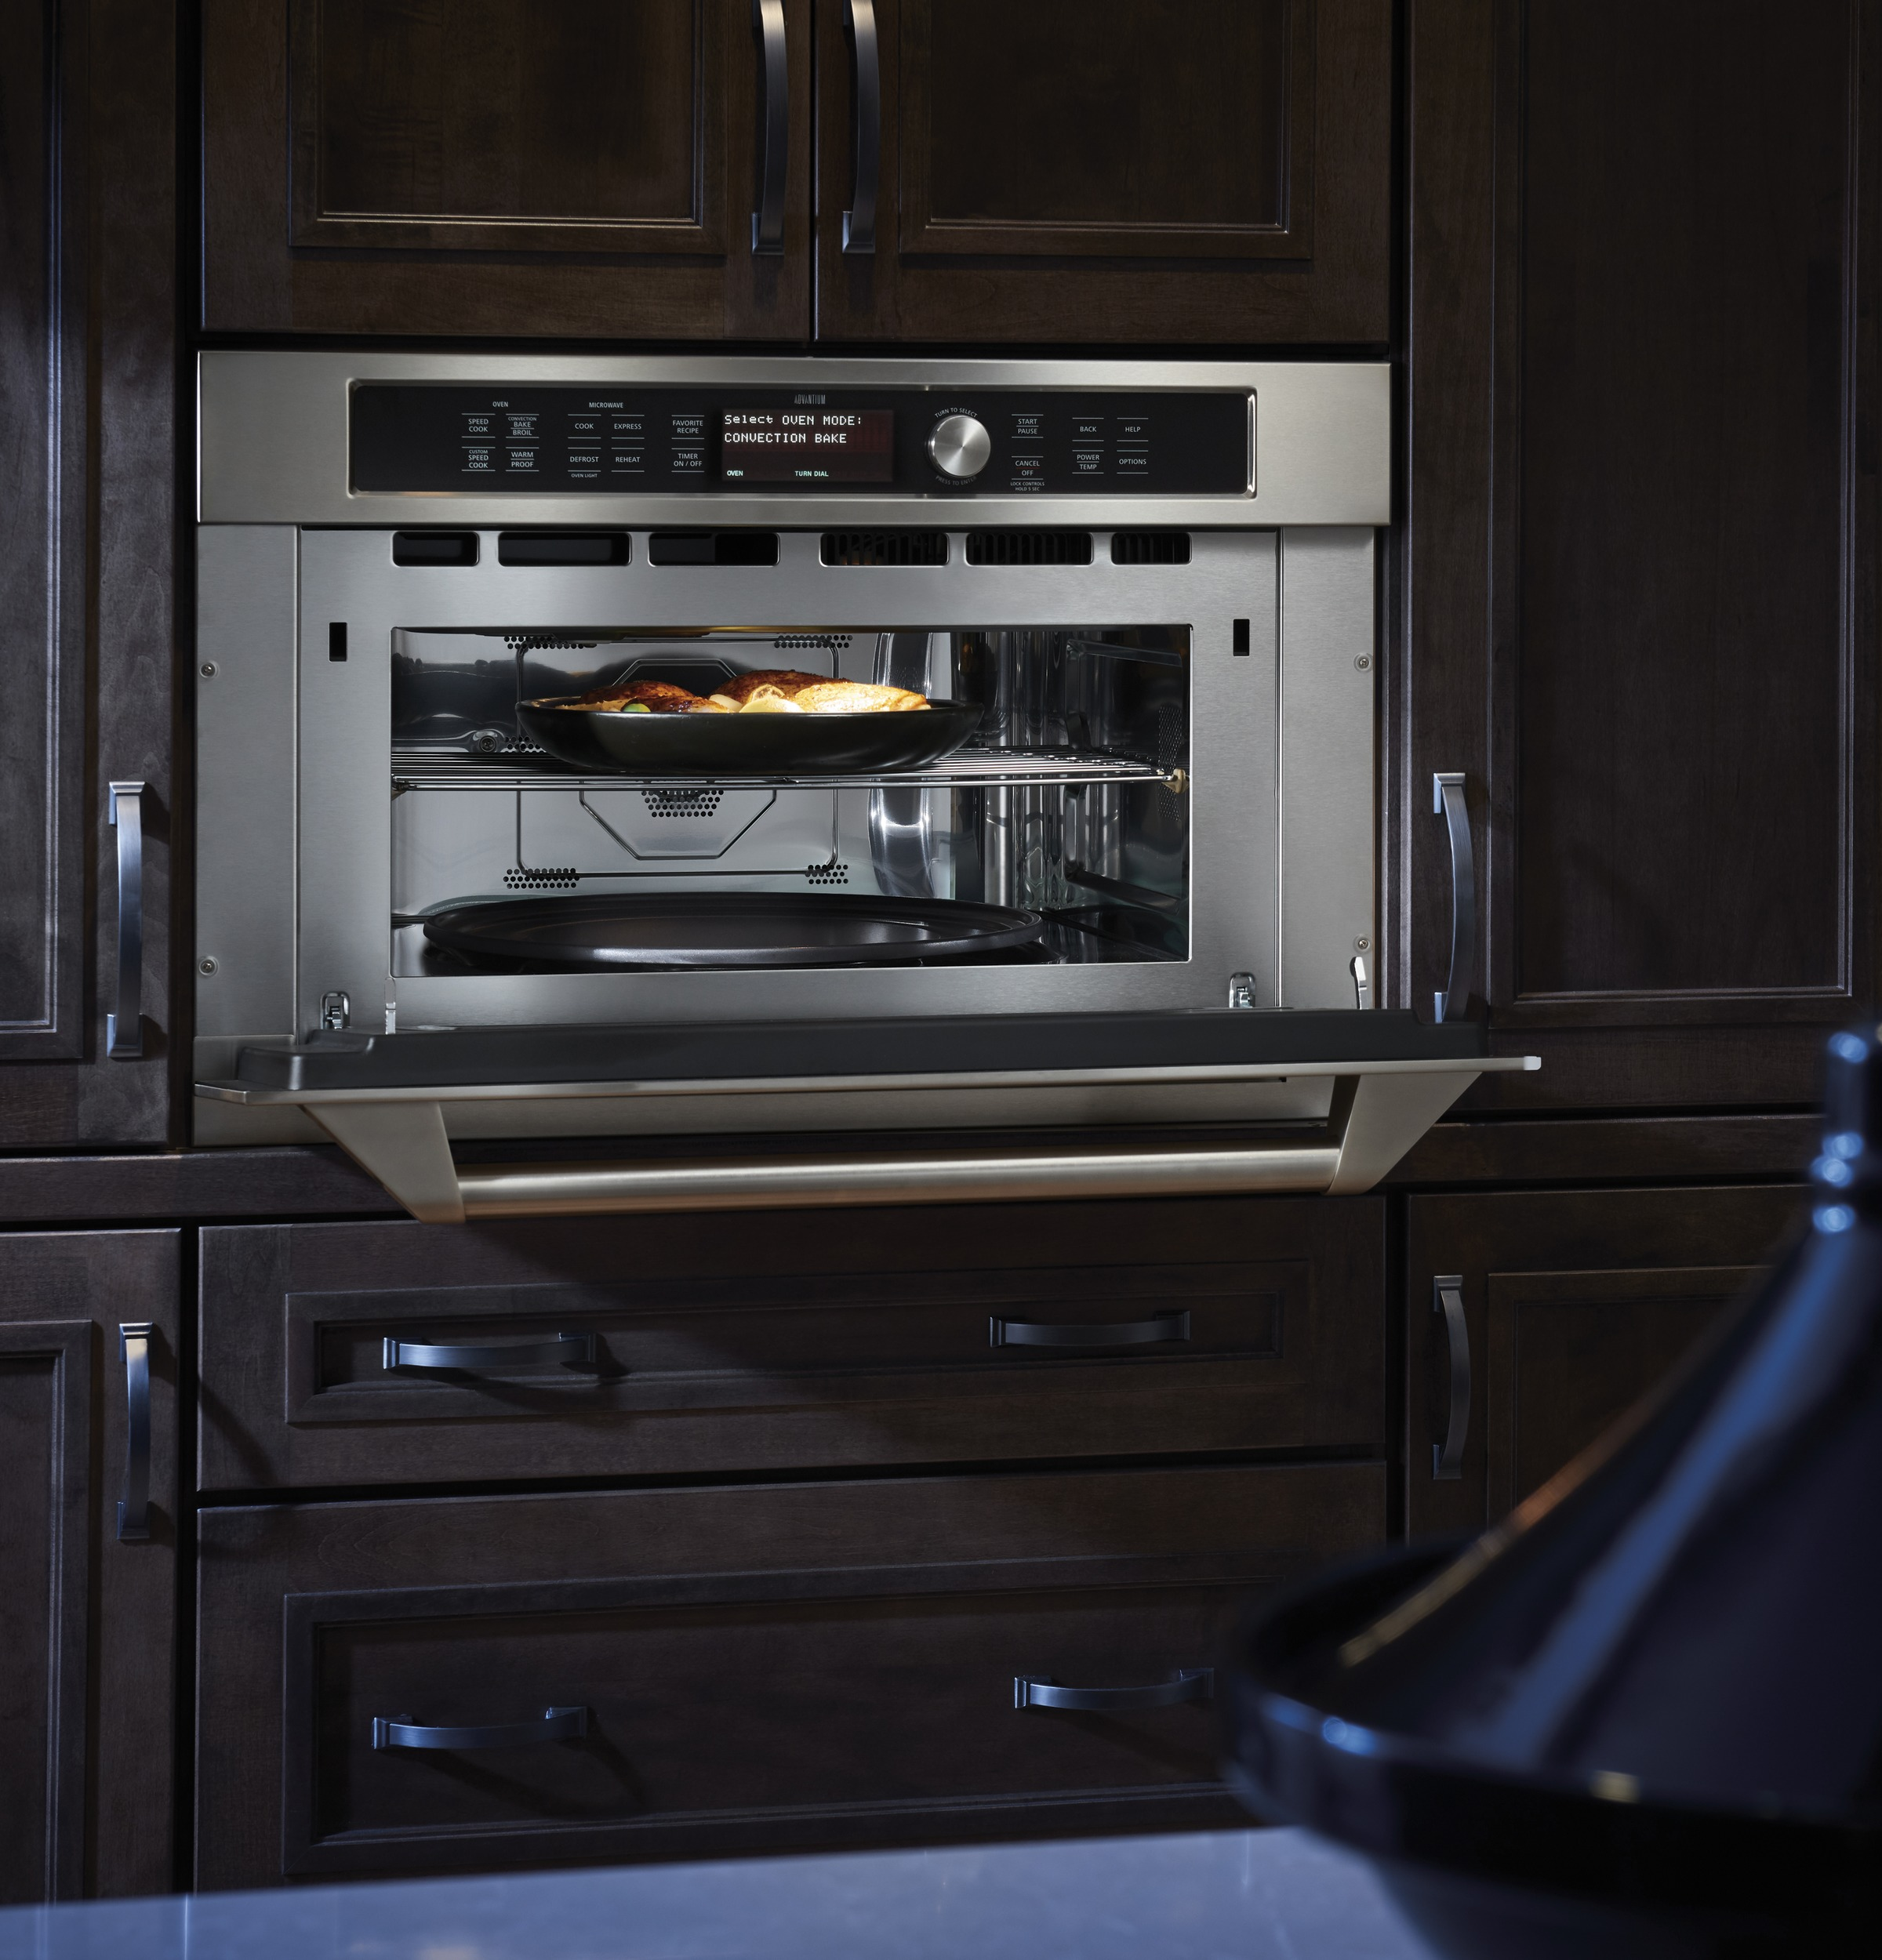 Model: ZSC1202JSS | Monogram Built-In Oven with Advantium® Speedcook Technology- 120V